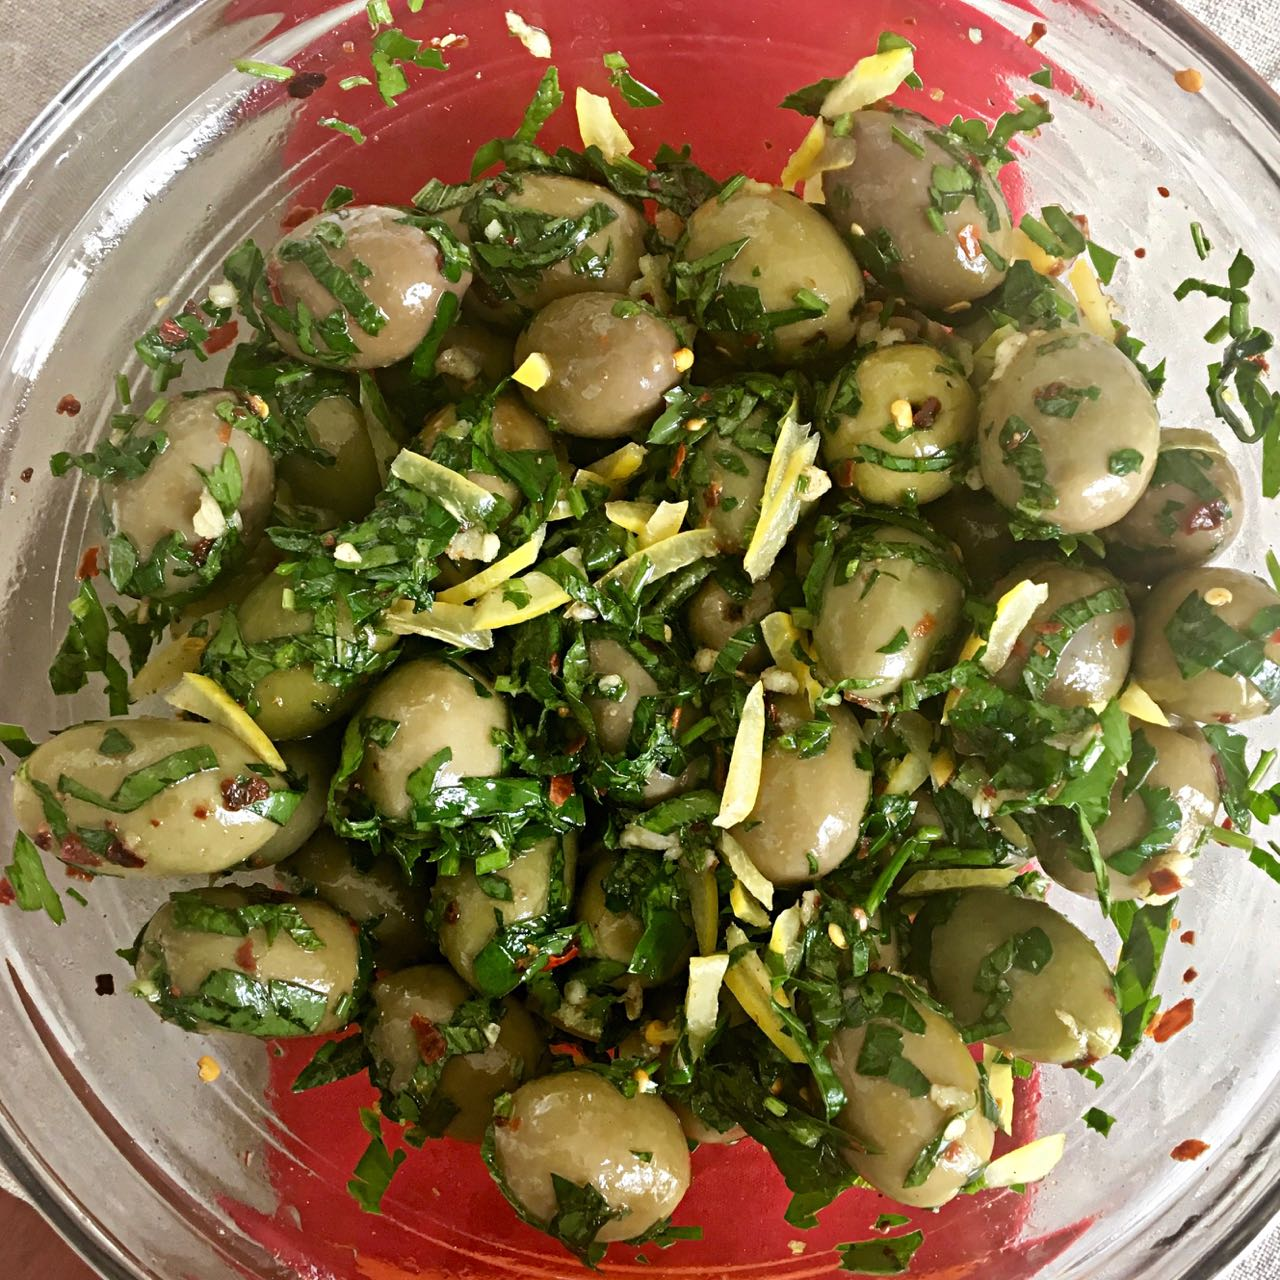 Olives Marinated with Herbs, Garlic and Preserved Lemon